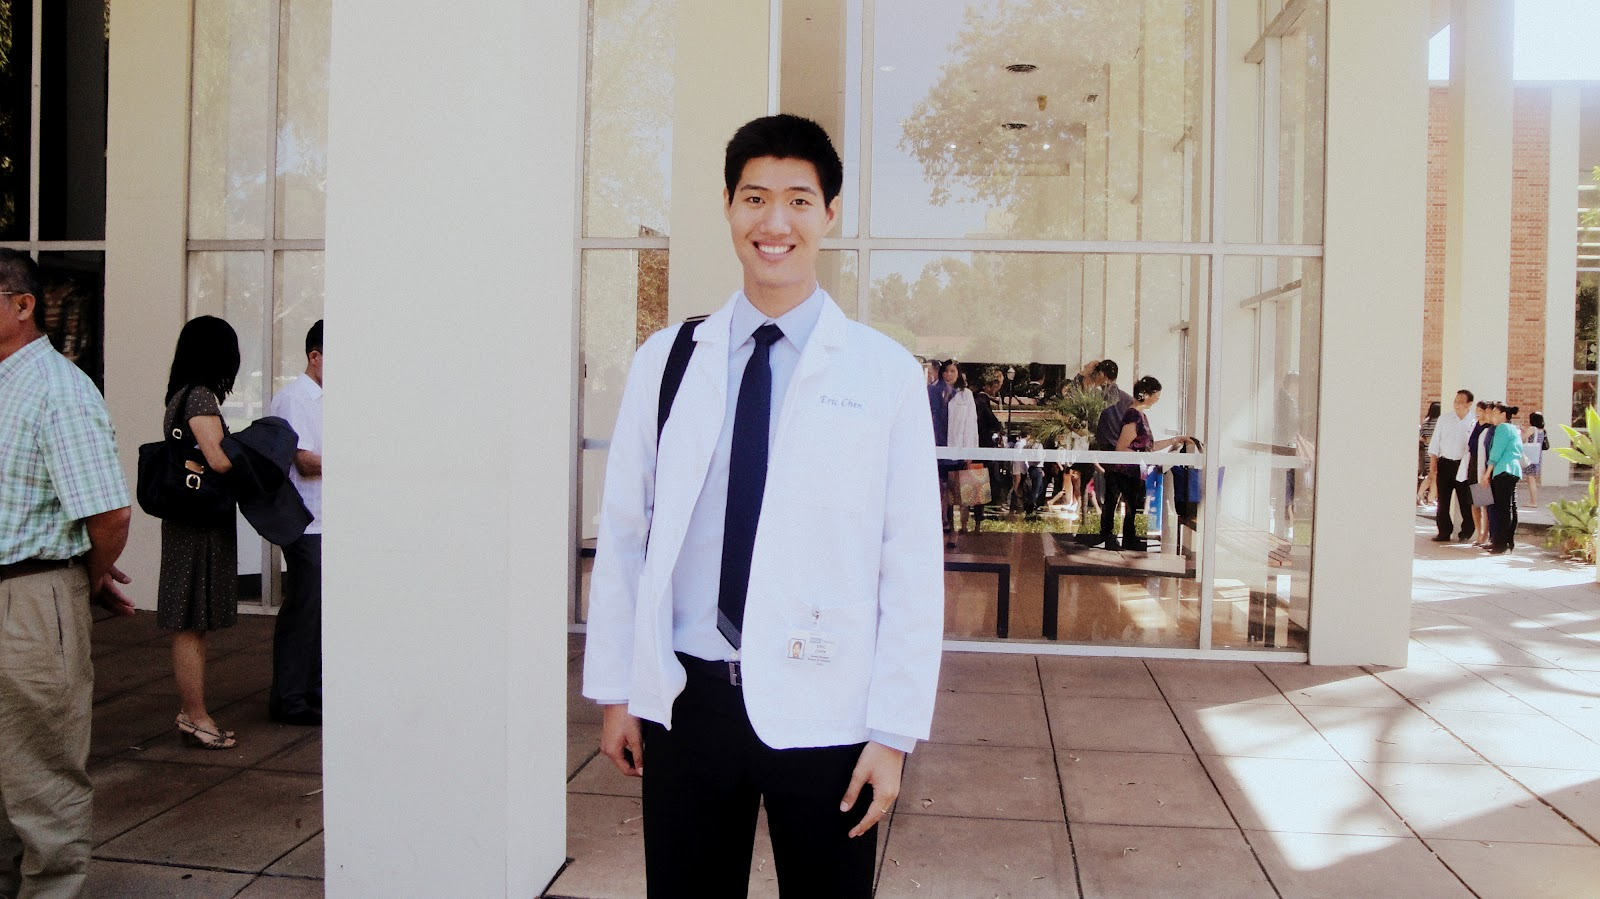 Obsessed with teeth whitening: 2012 UCLA Dental School White